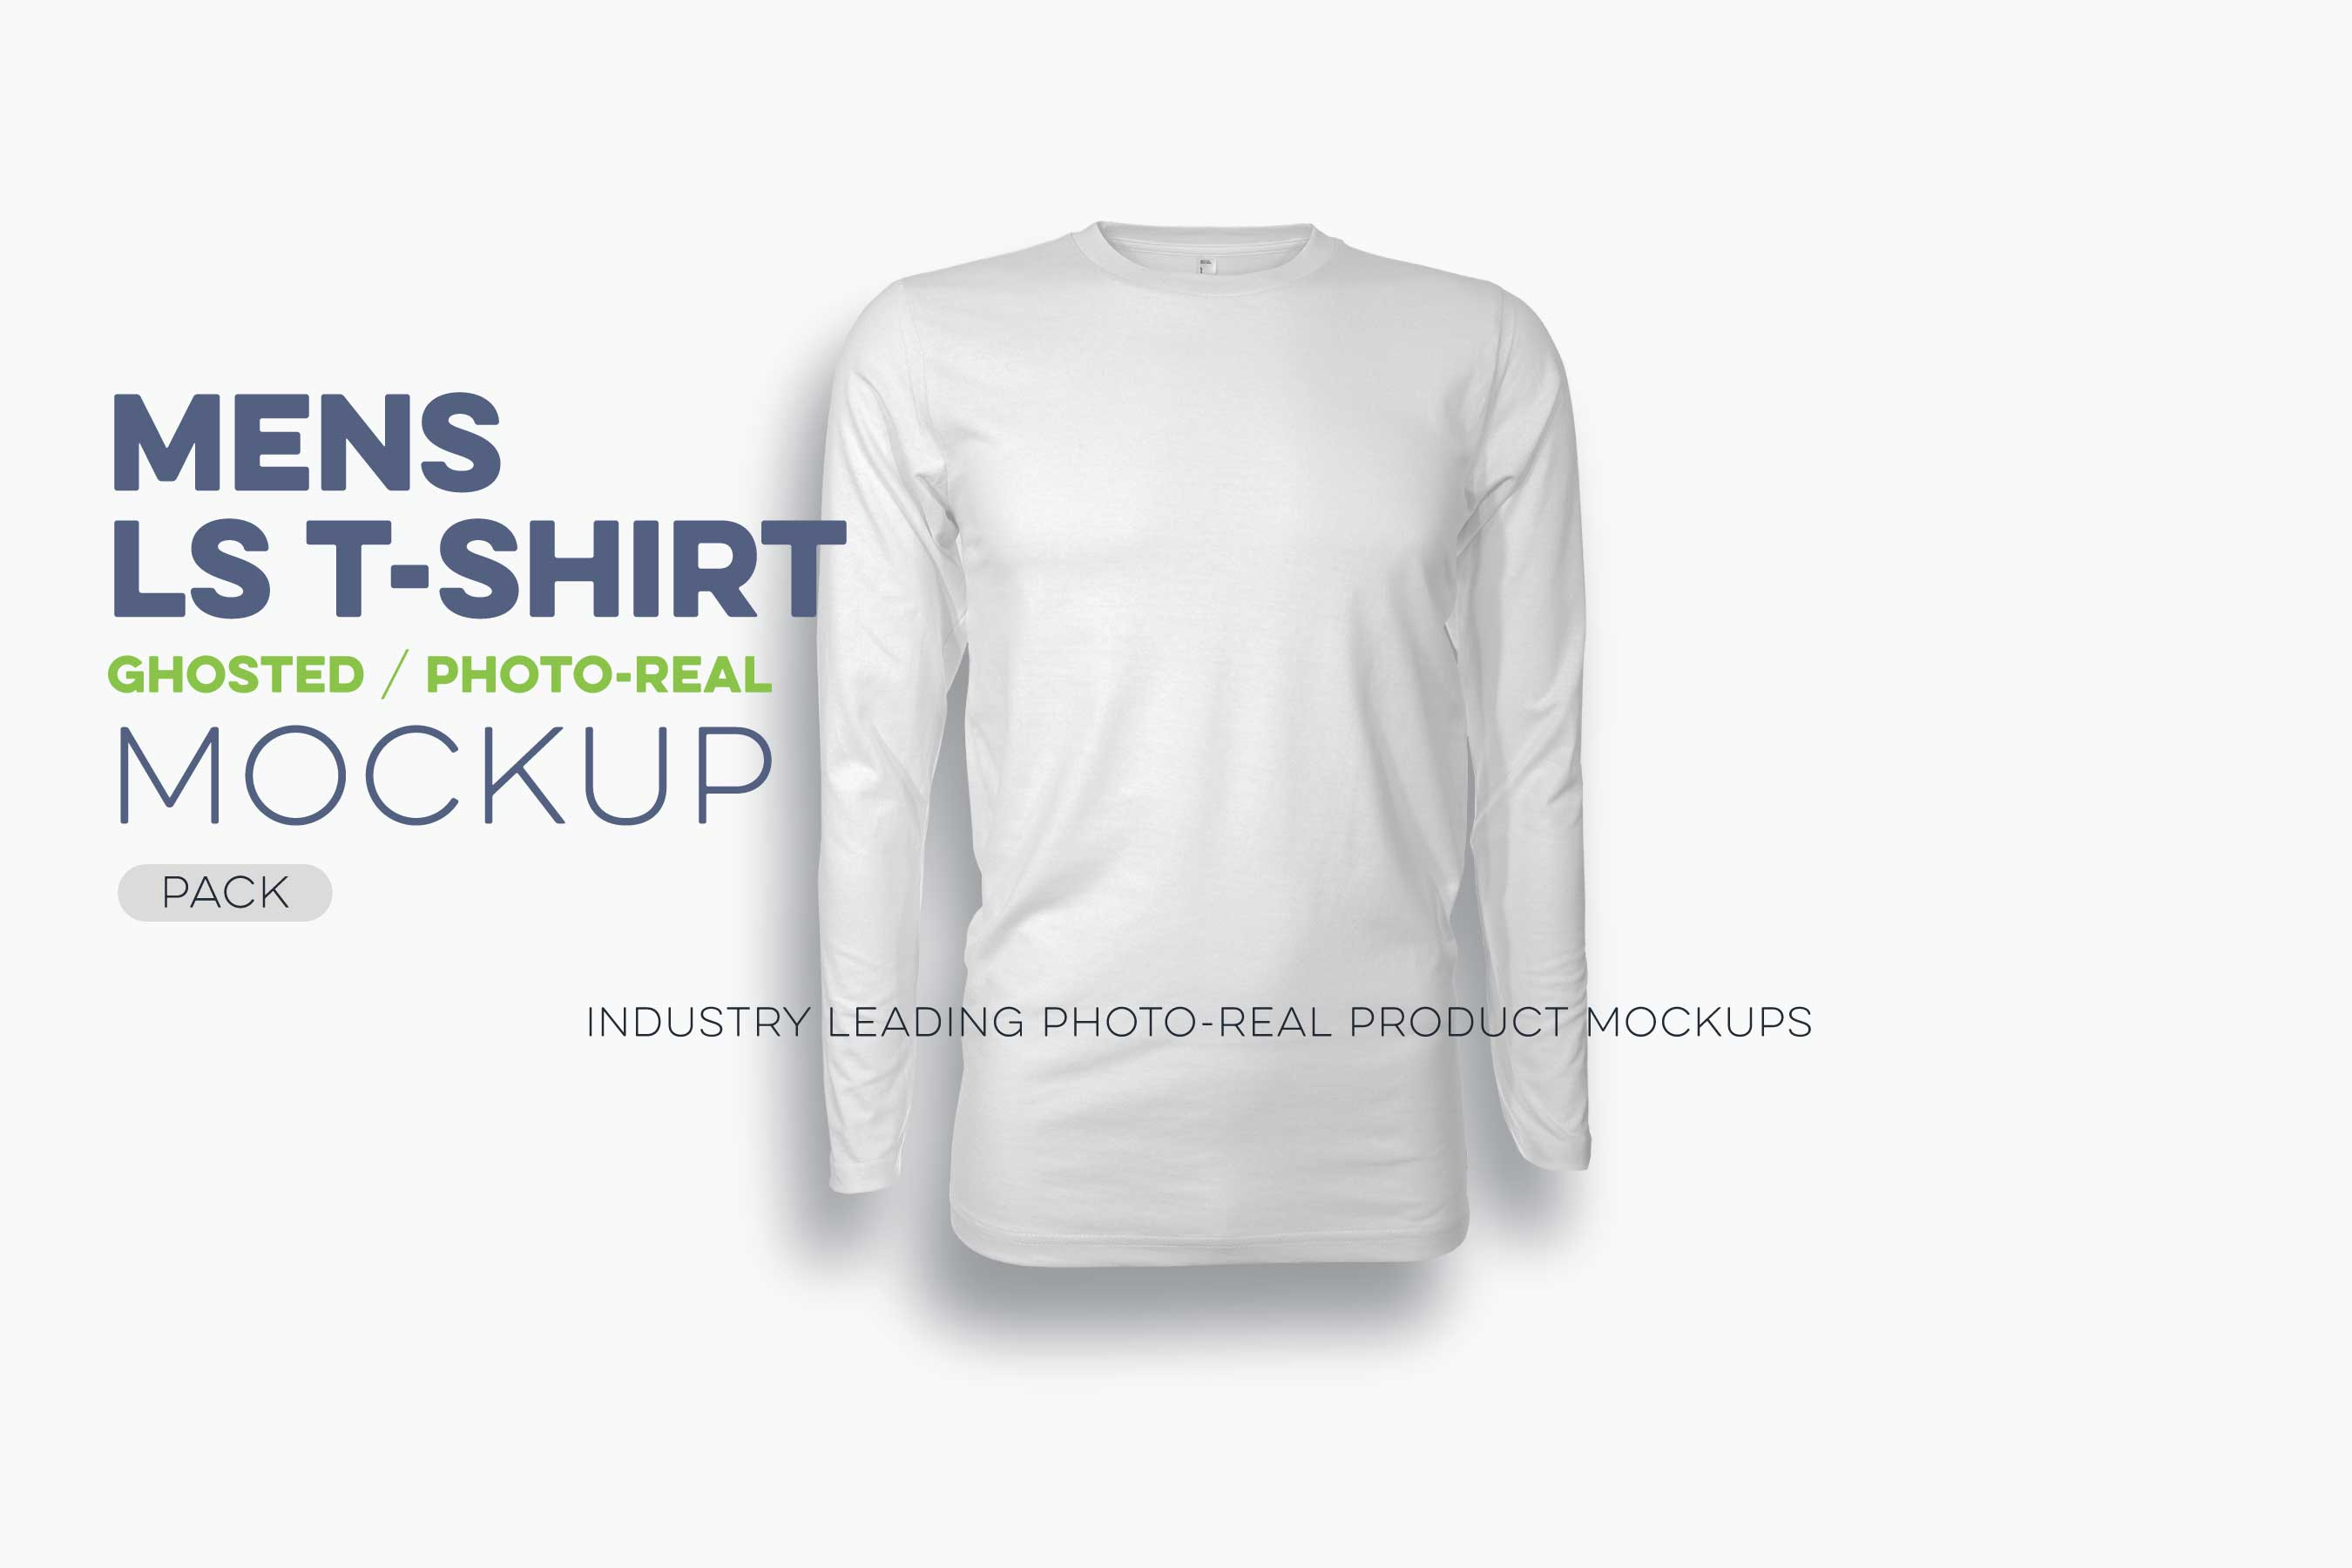 mens ghosted long sleeve t-shirt mockup template N